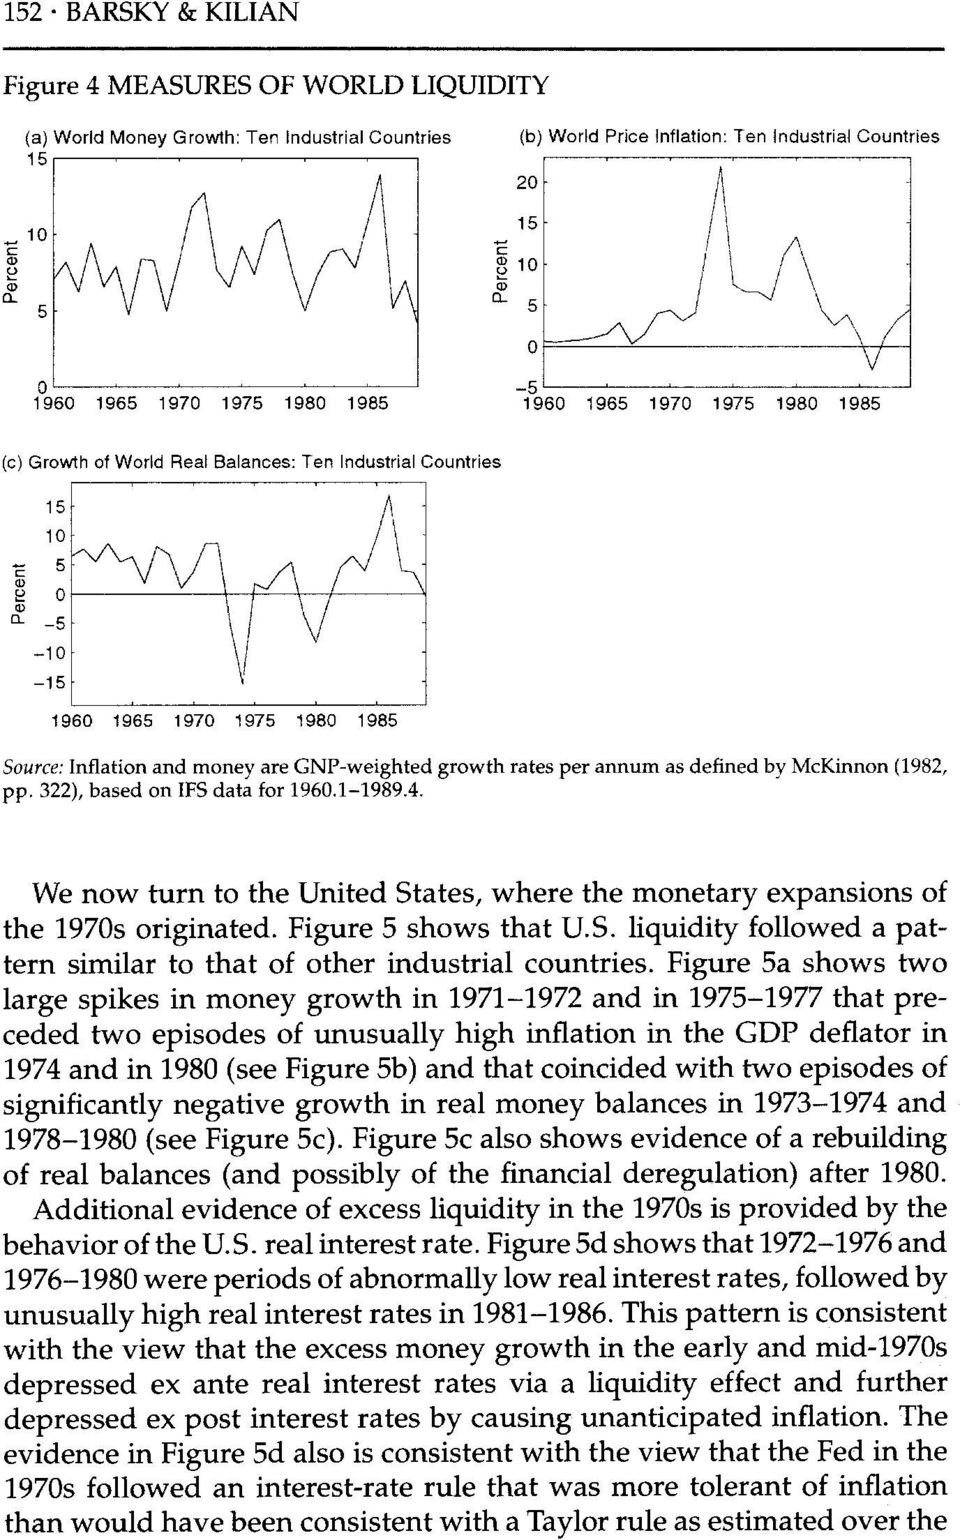 Inflation and money are GNP-weighted growth rates per annum as defined by McKinnon (1982, pp. 322), based on IFS data for 1960.1-1989.4.